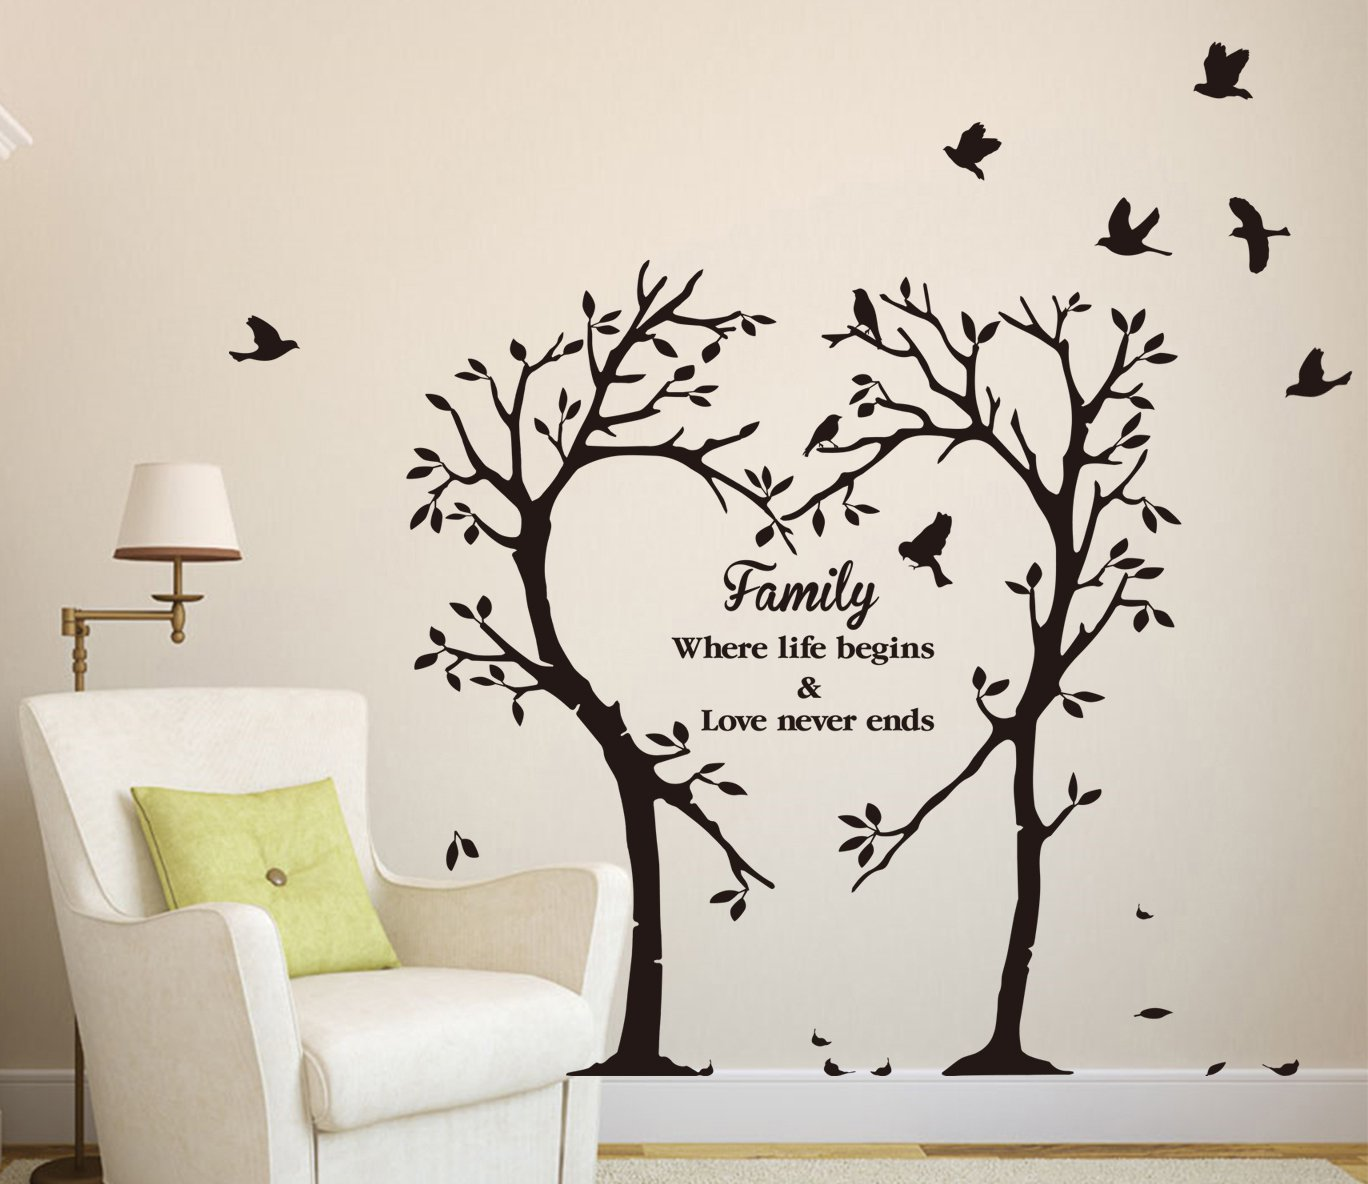 Large family inspirational love tree wall art sticker wall large family inspirational love tree wall art sticker wall sticker decal amipublicfo Image collections